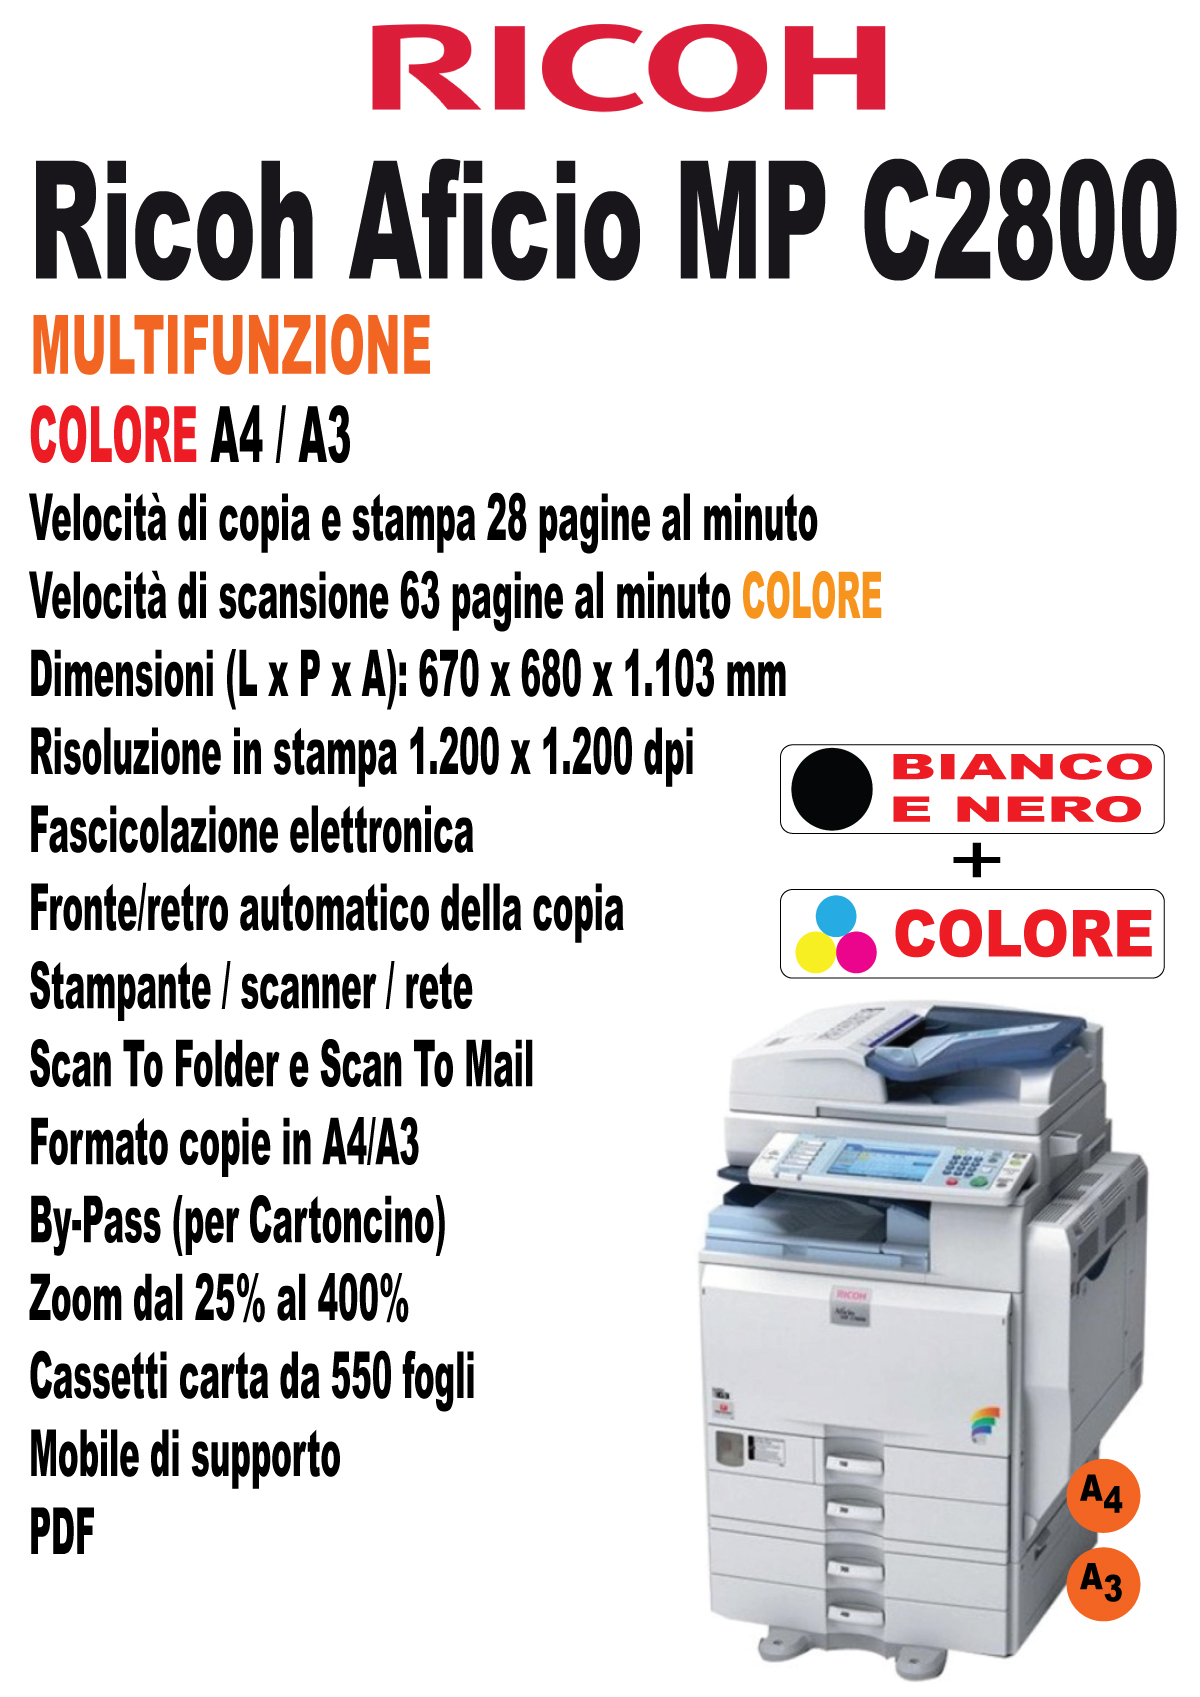 RICOH-AFICIO-MP-C2800